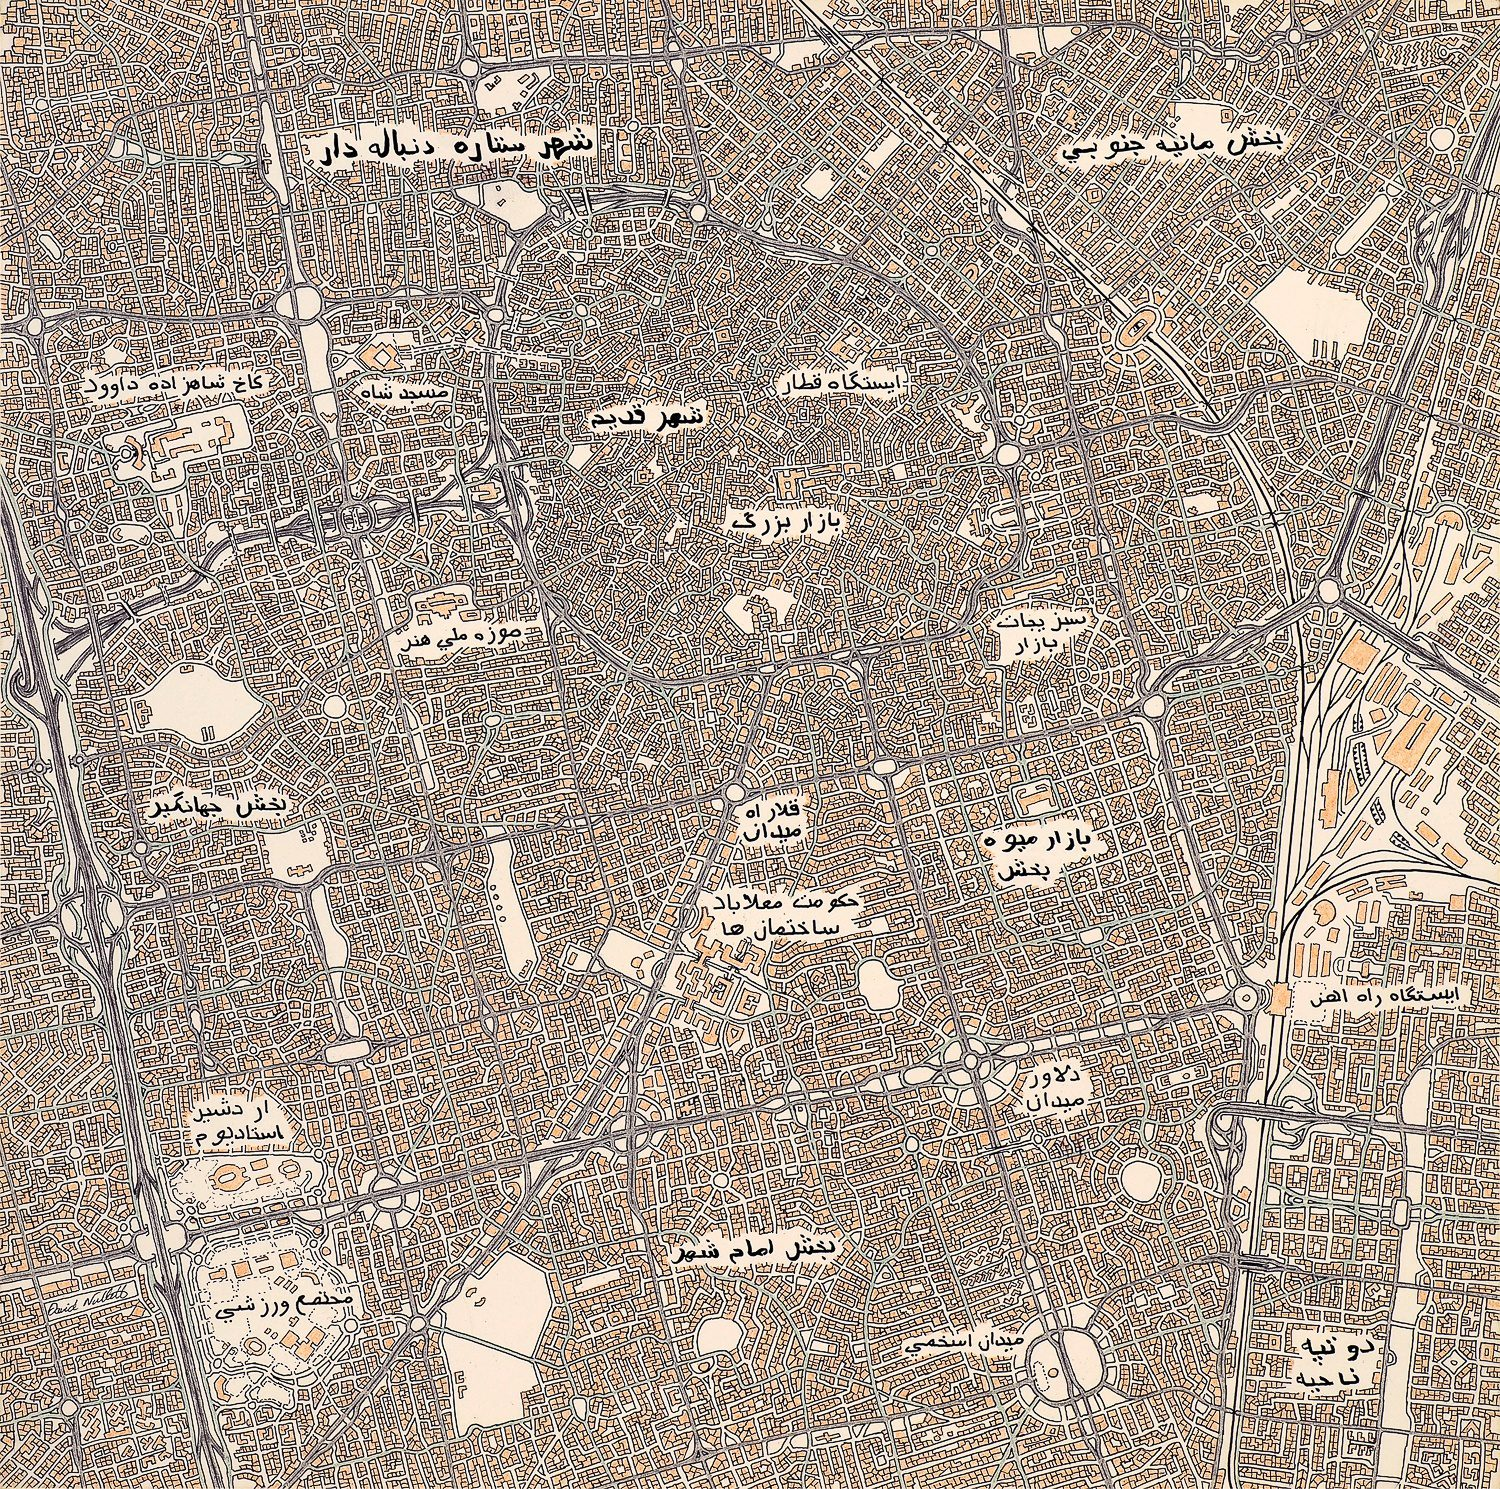 City of Blazing Stars: The fictional map David made after talking with an artist in Iran.